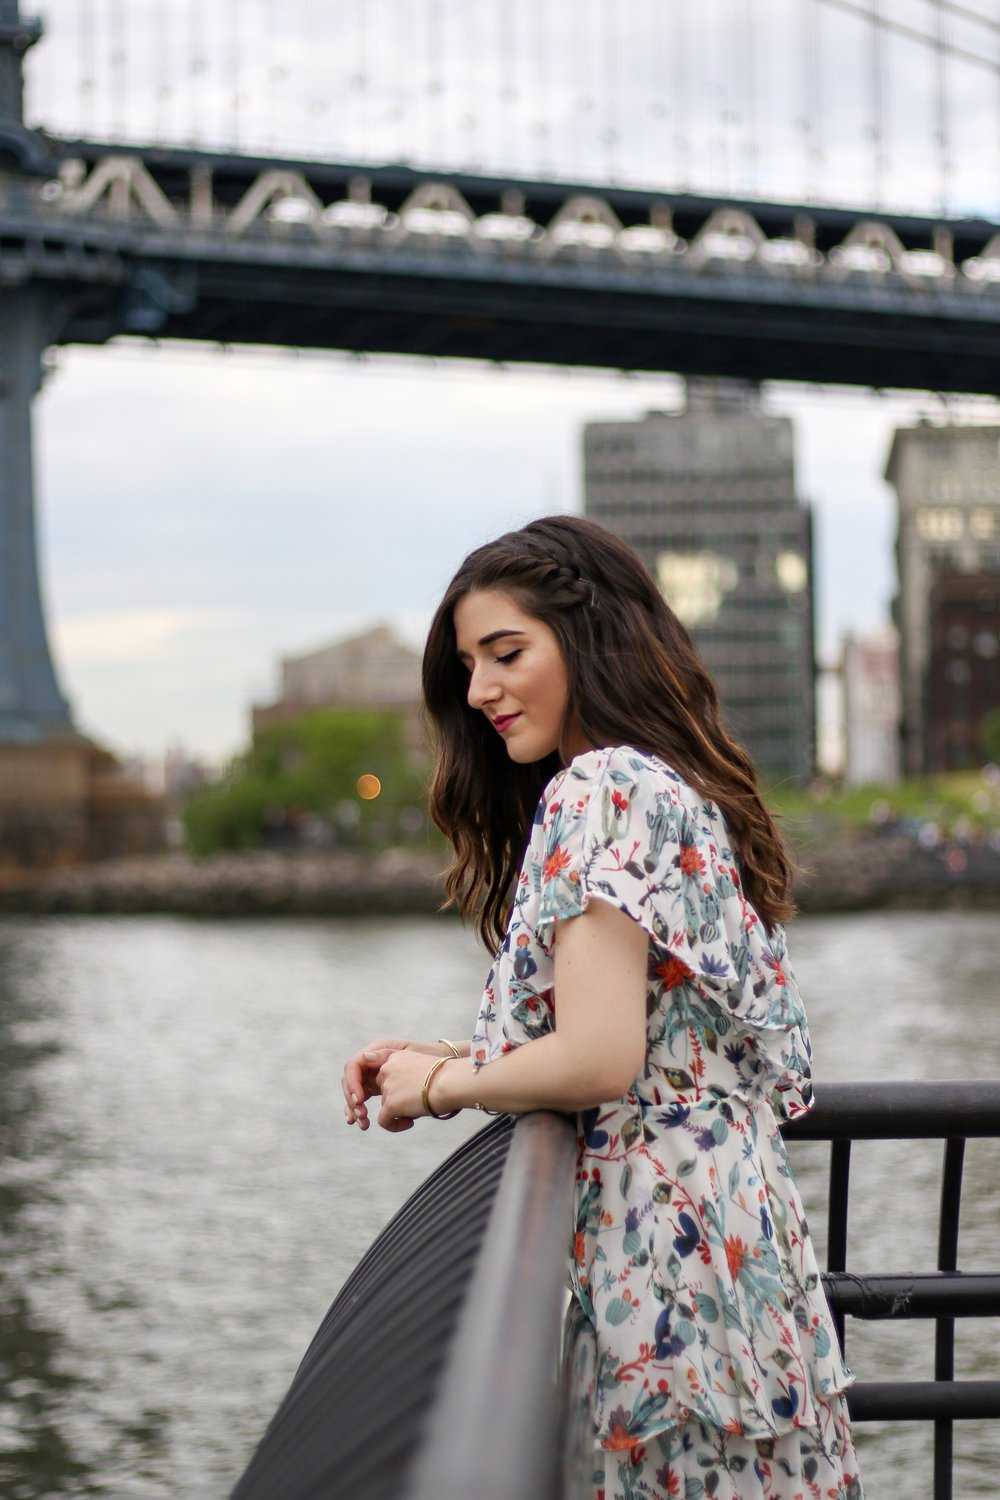 Ruffle Floral Maxi Dress Why You Should Trust Me Esther Santer Fashion Blog NYC Street Style Blogger Outfit OOTD Trendy Summer Outdoors Pretty Girly Photoshoot Feminine Beautiful Model Accessories Shoes Sandals Wedges Jewelry Gold Bracelets Women Shop.JPG